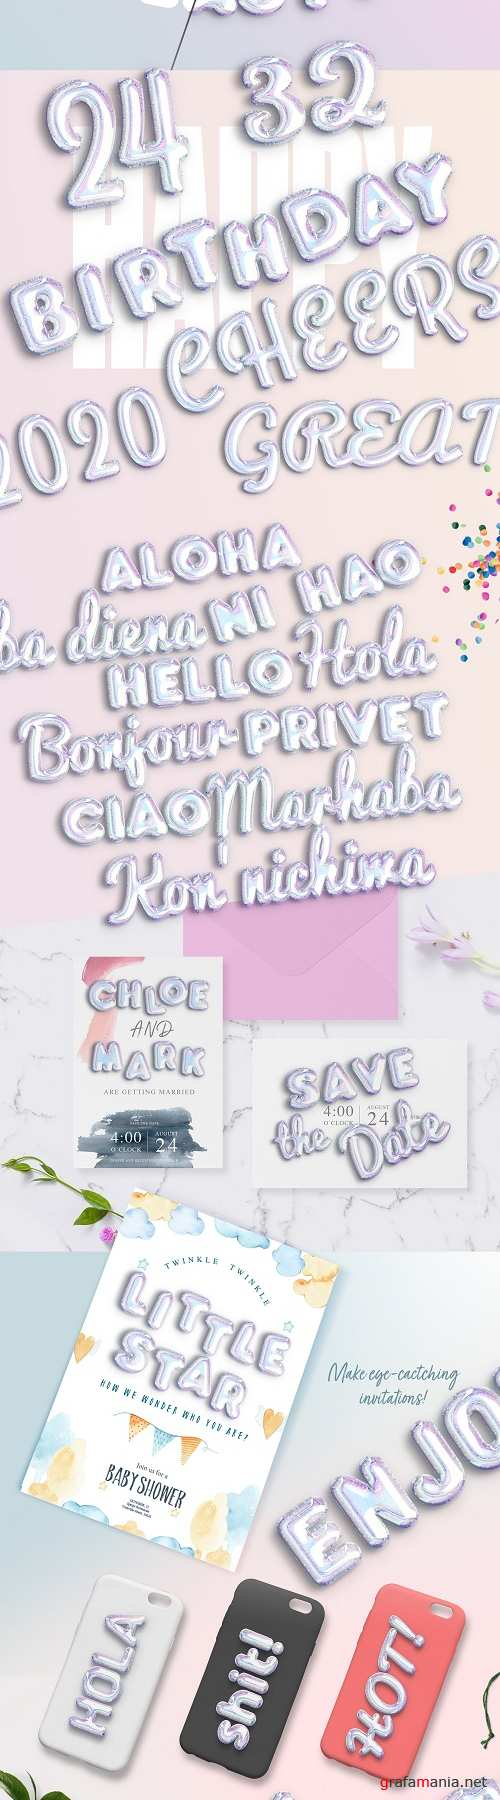 Holographic Balloon Text Effect - 4095898